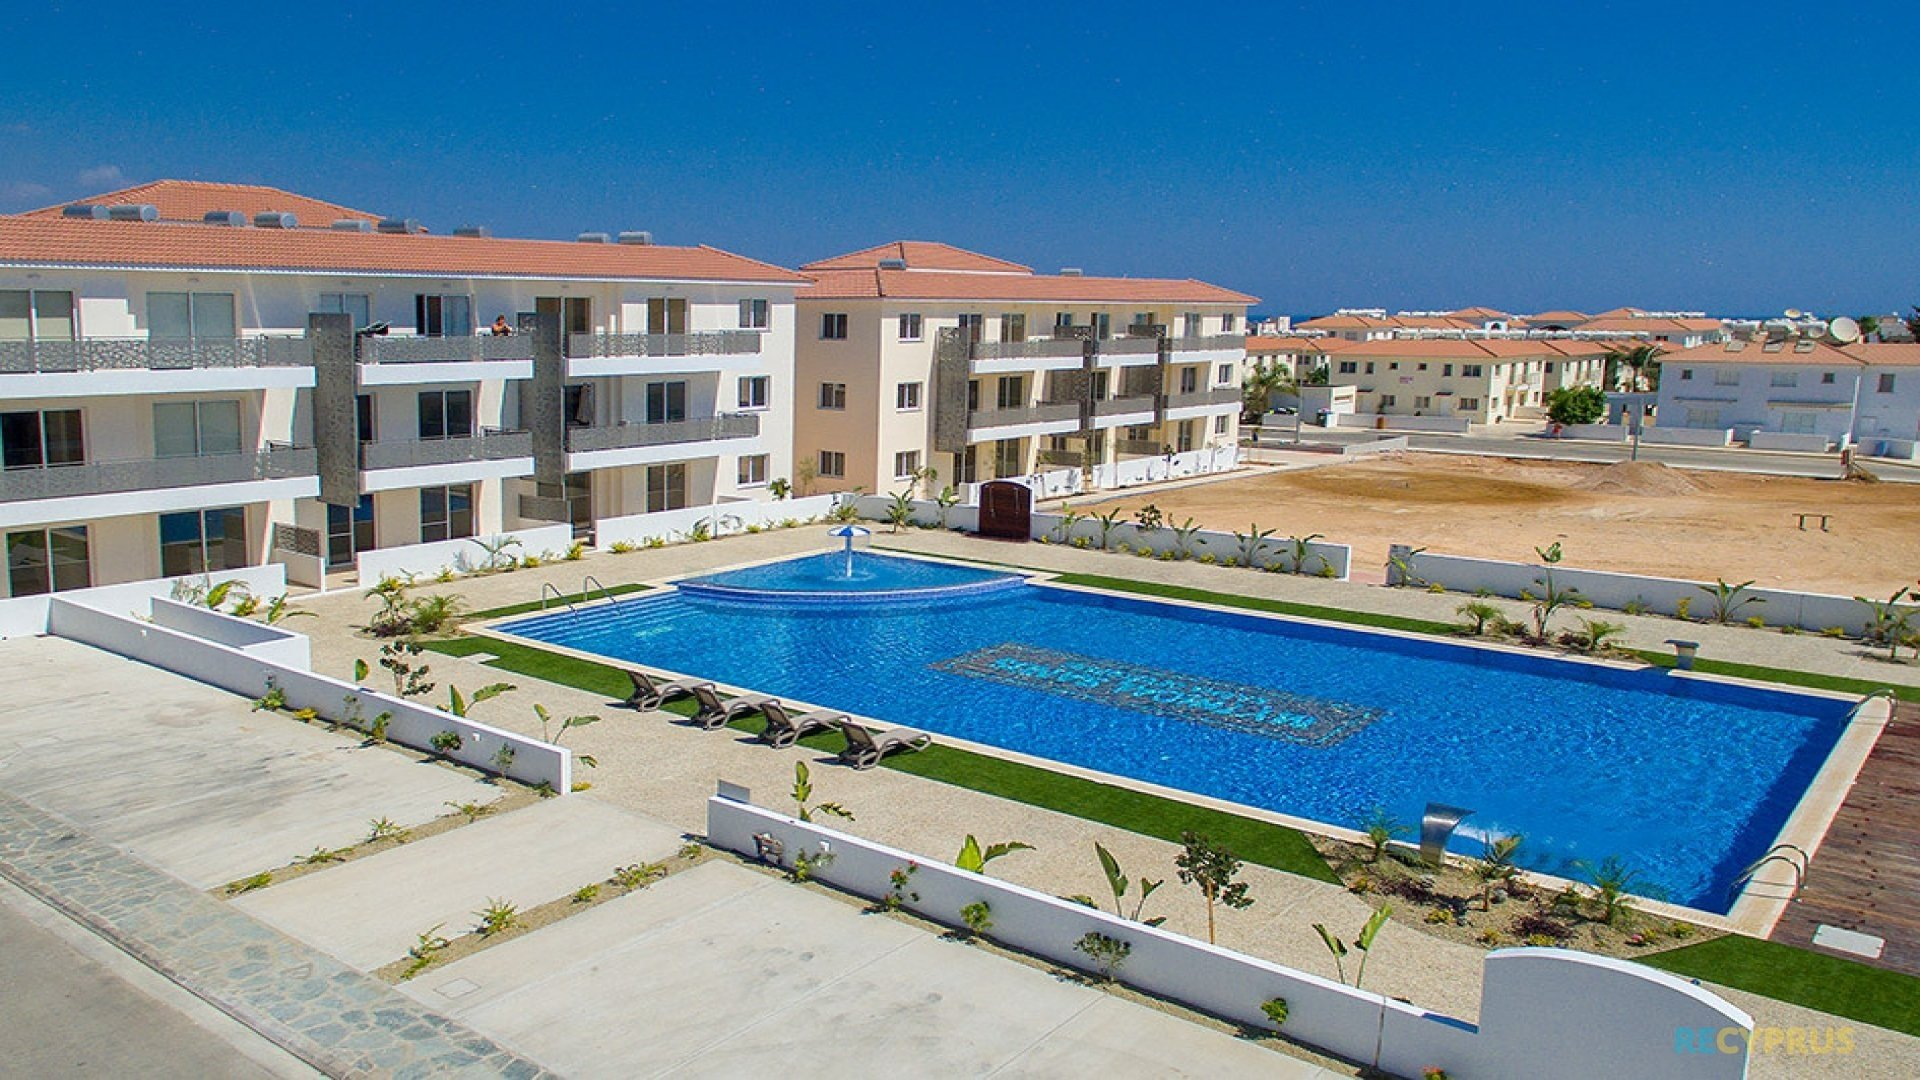 Apartment for sale Kapparis Famagusta Cyprus 8 3442